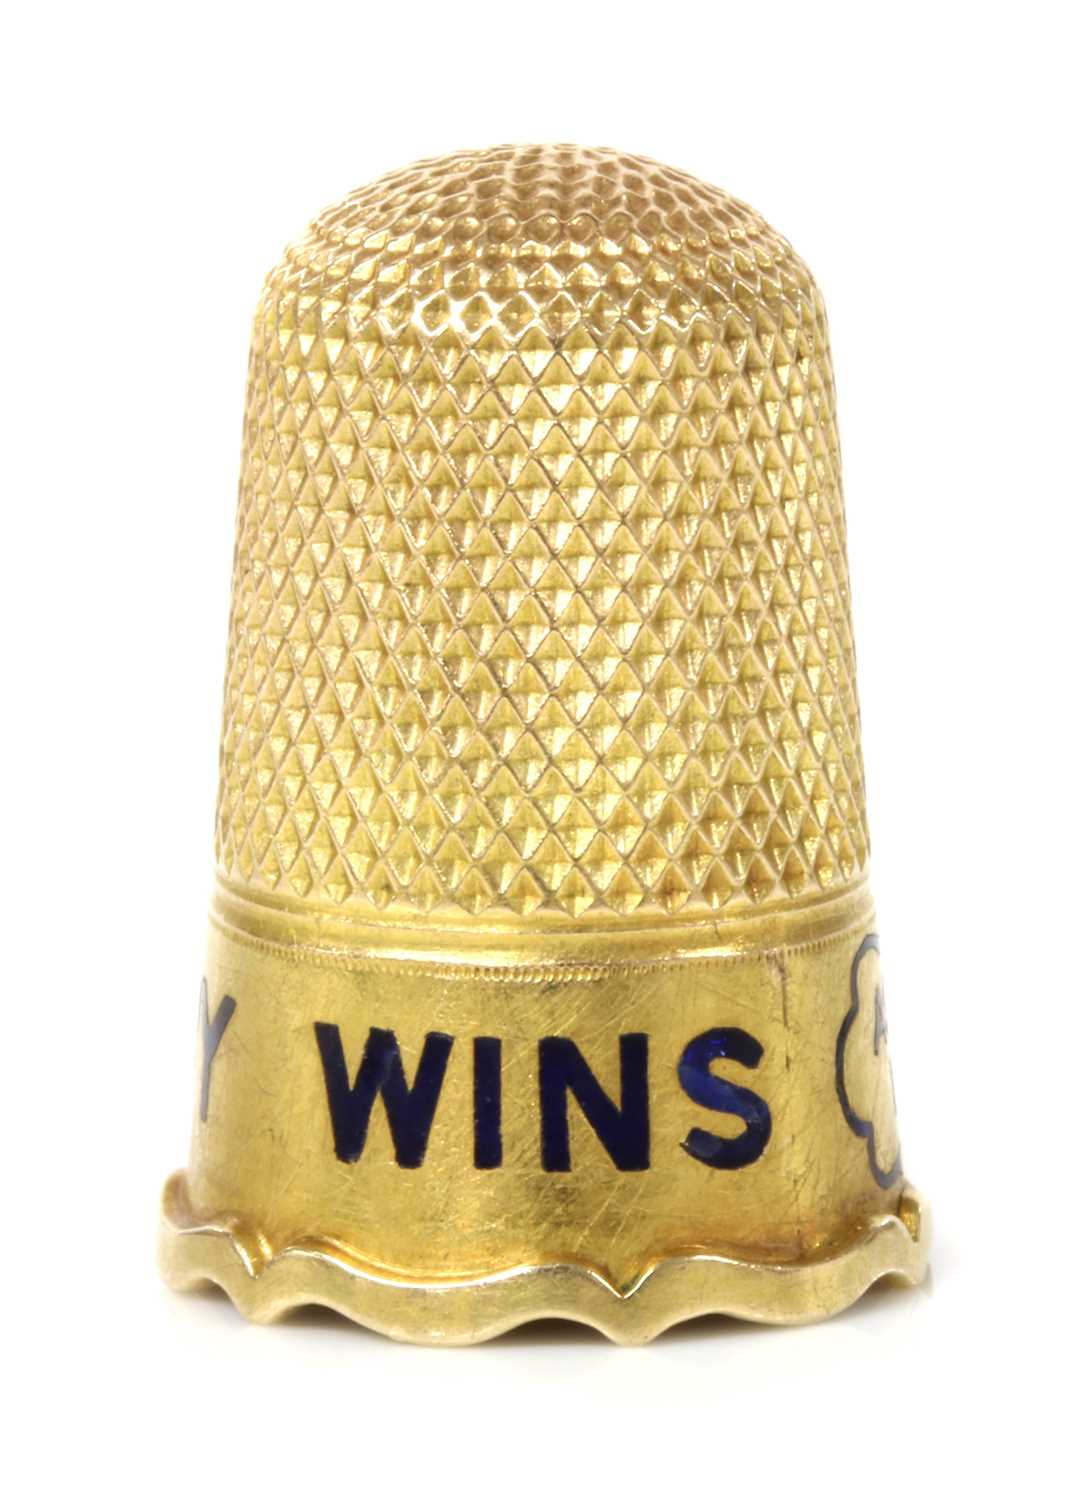 Of racing interest: a Victorian gold thimble, - Image 2 of 4